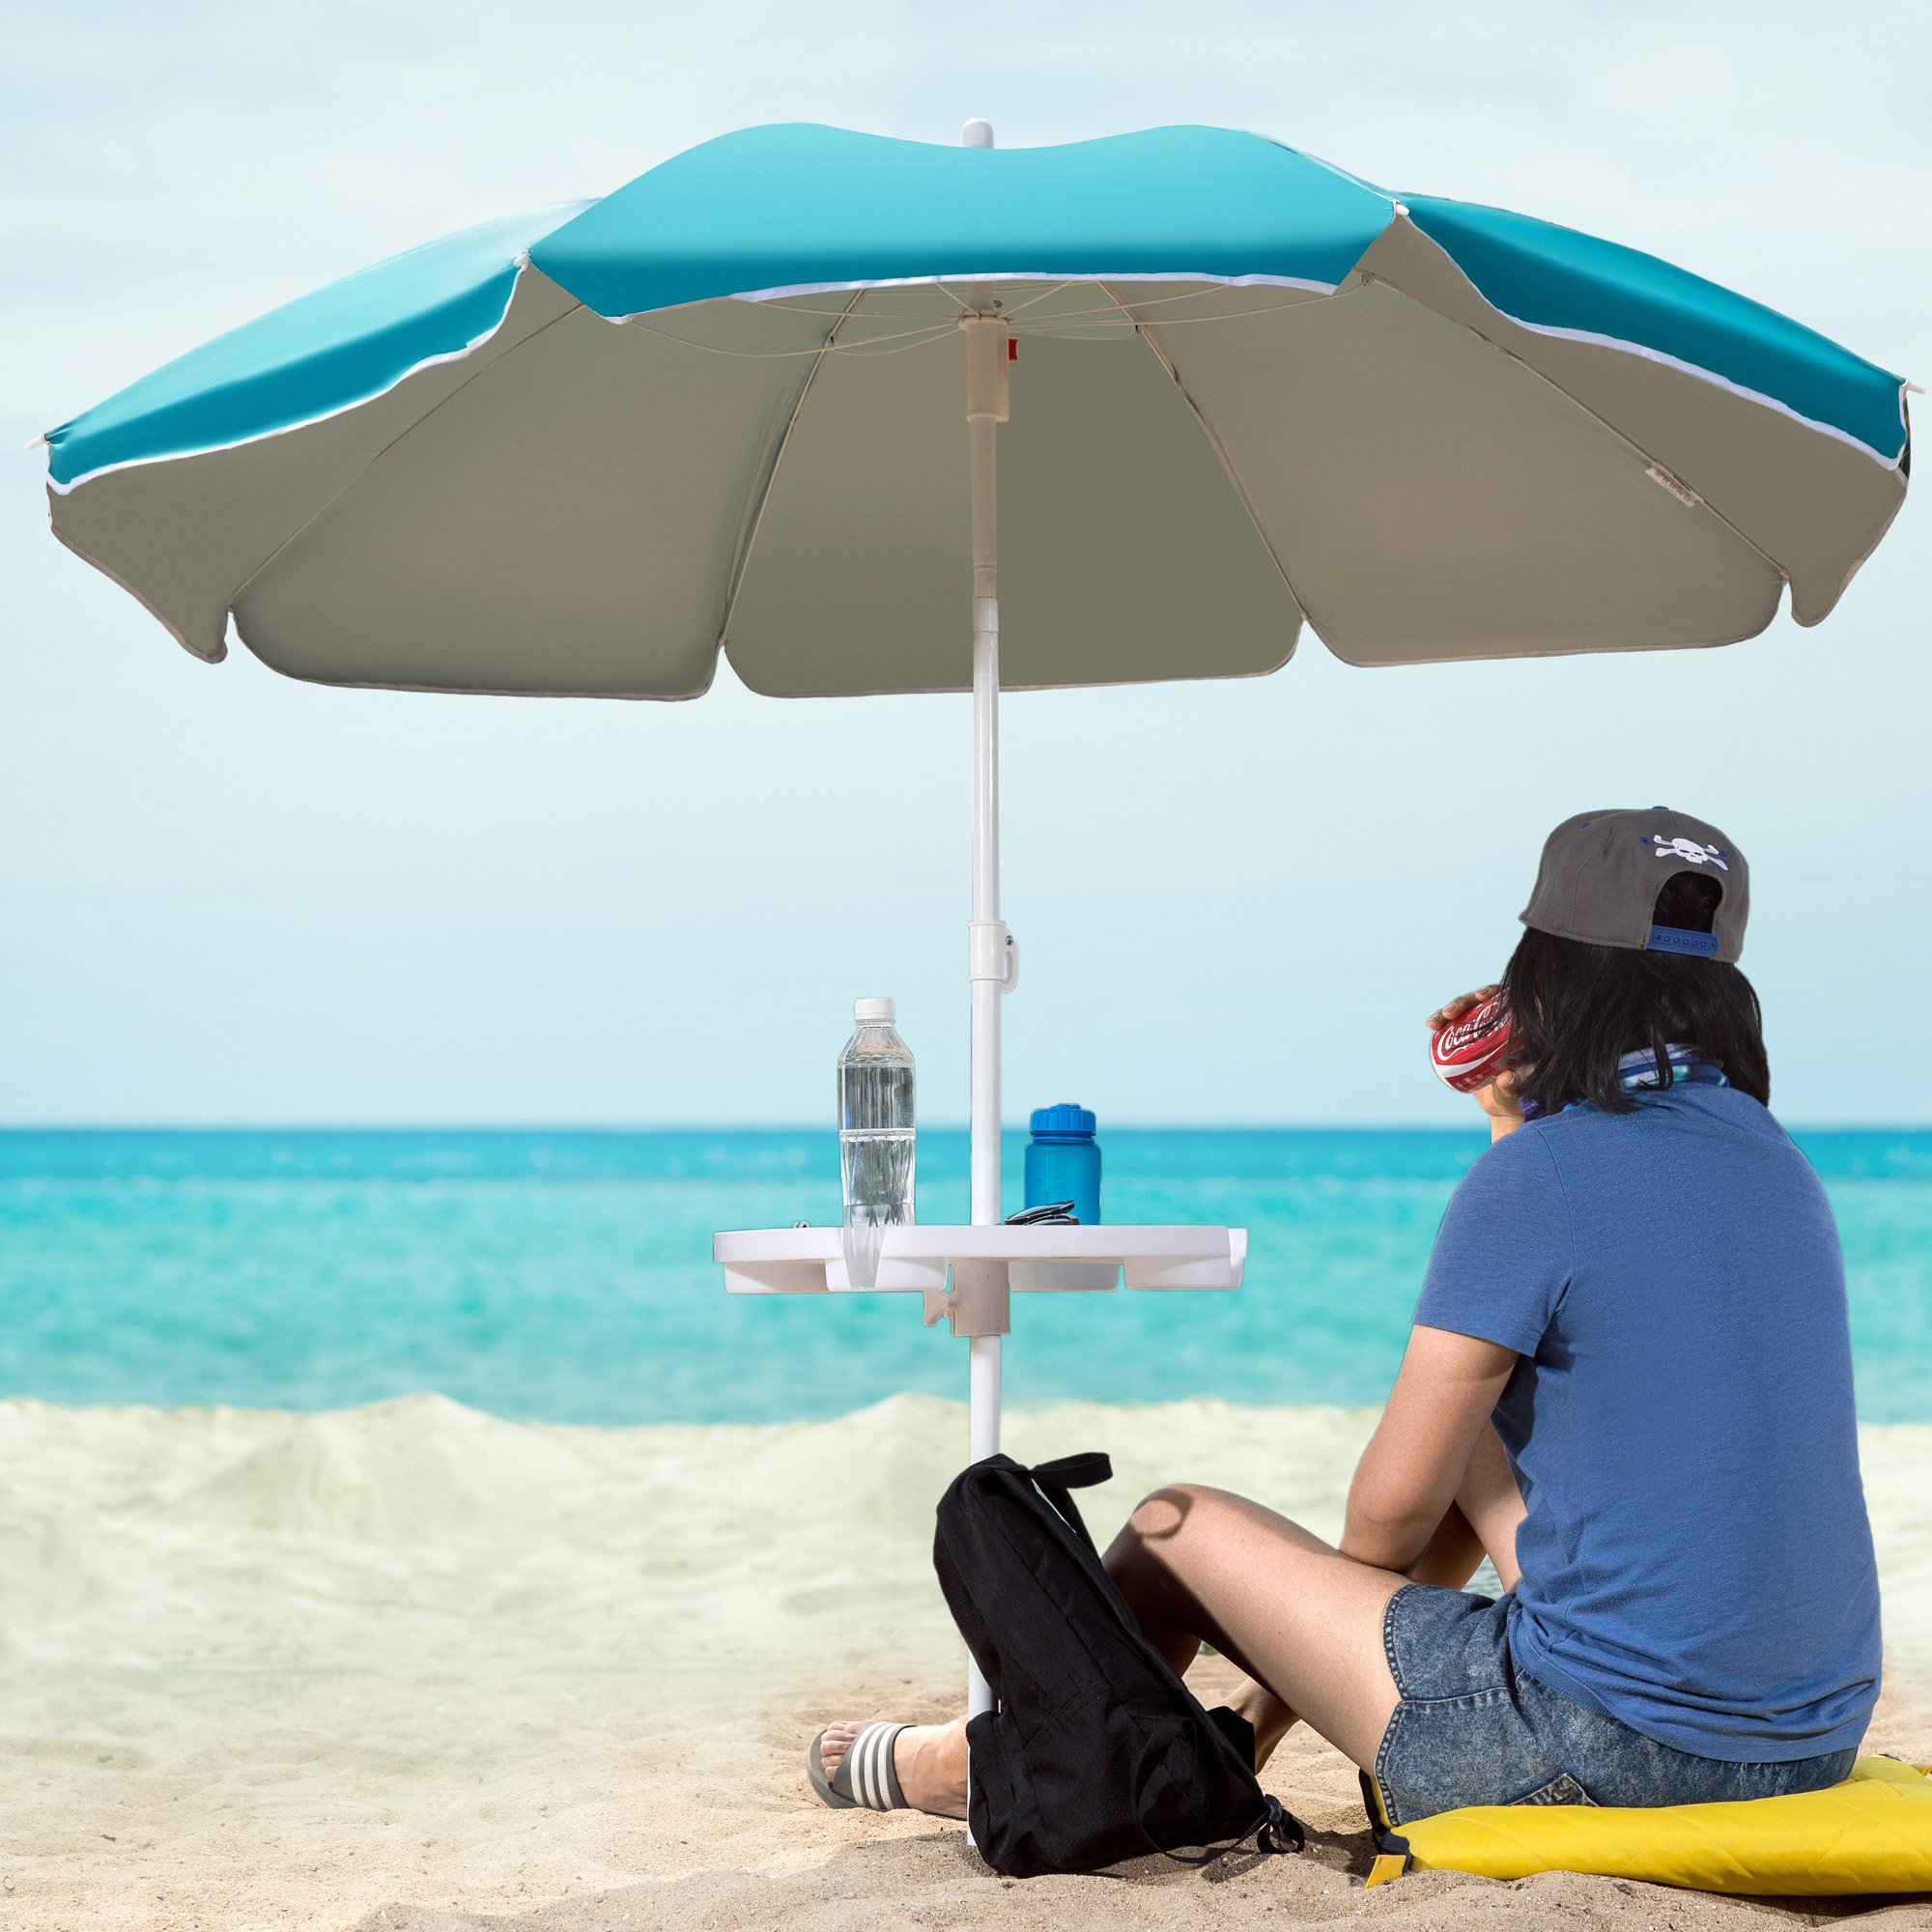 WeJoy Portable Beach Umbrella Table with 4 Cup Holders